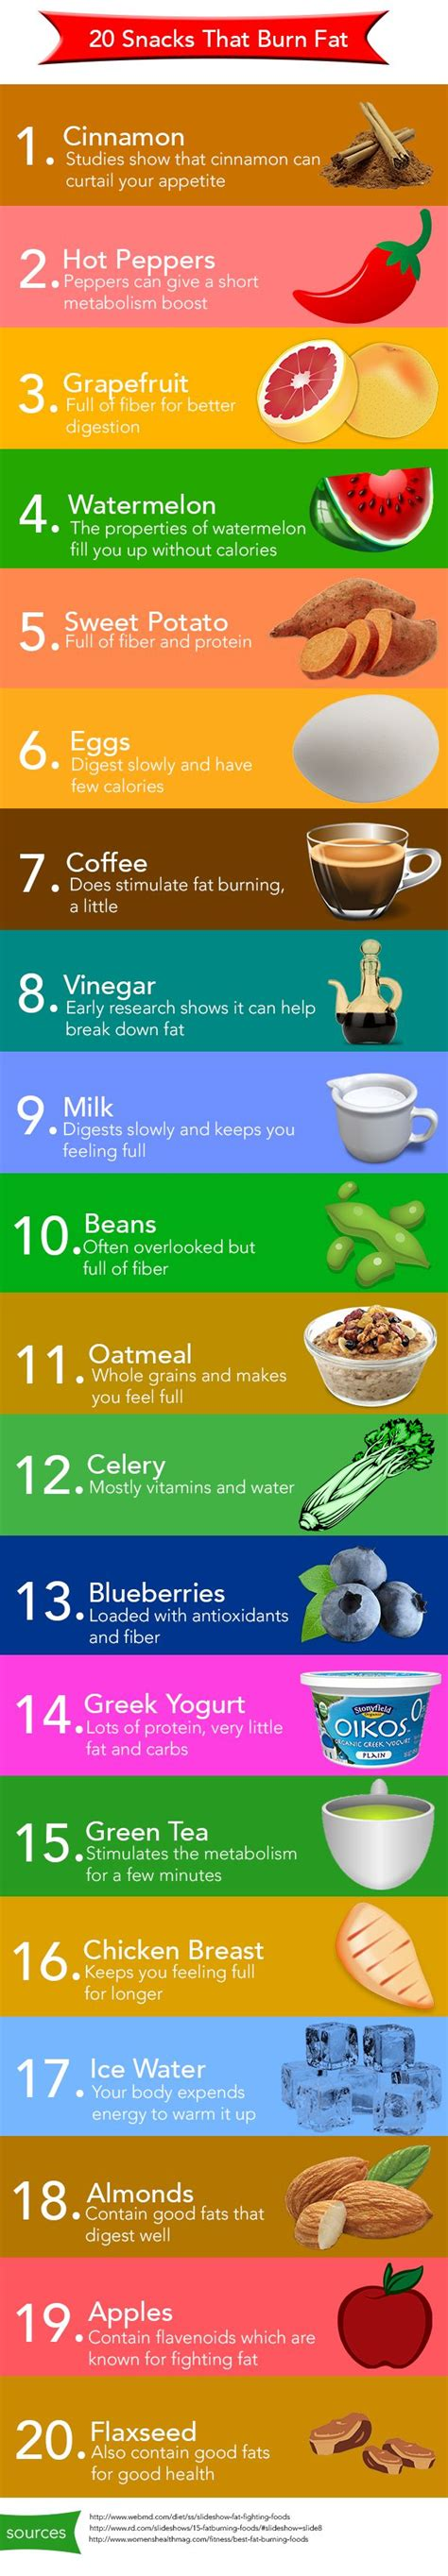 healthy fats to snack on 20 burning snacks the todd and erin favorite five